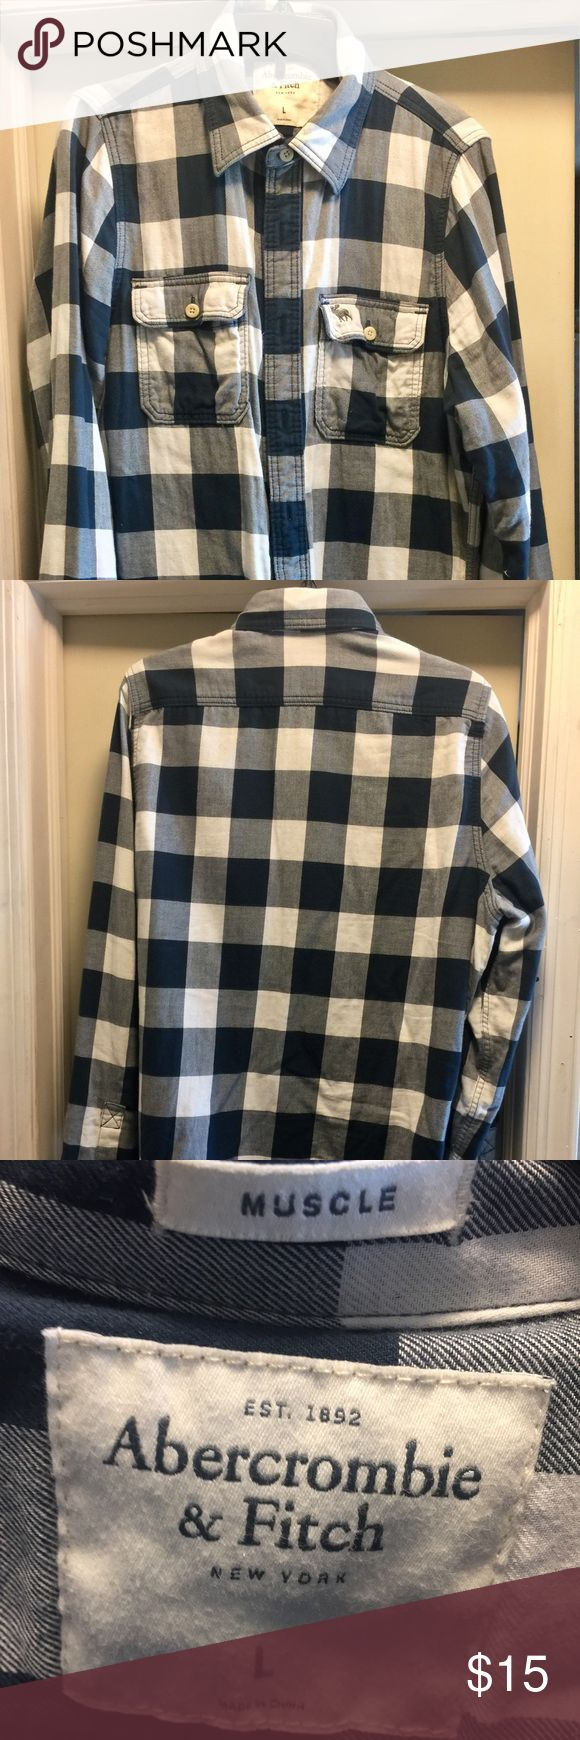 Abercrombie Men's Button Down Shirt Abercrombie men's button down shirt.  Size is large. This shirt is in like new condition.  Bundle to save on shipping. Abercrombie & Fitch Shirts Casual Button Down Shirts